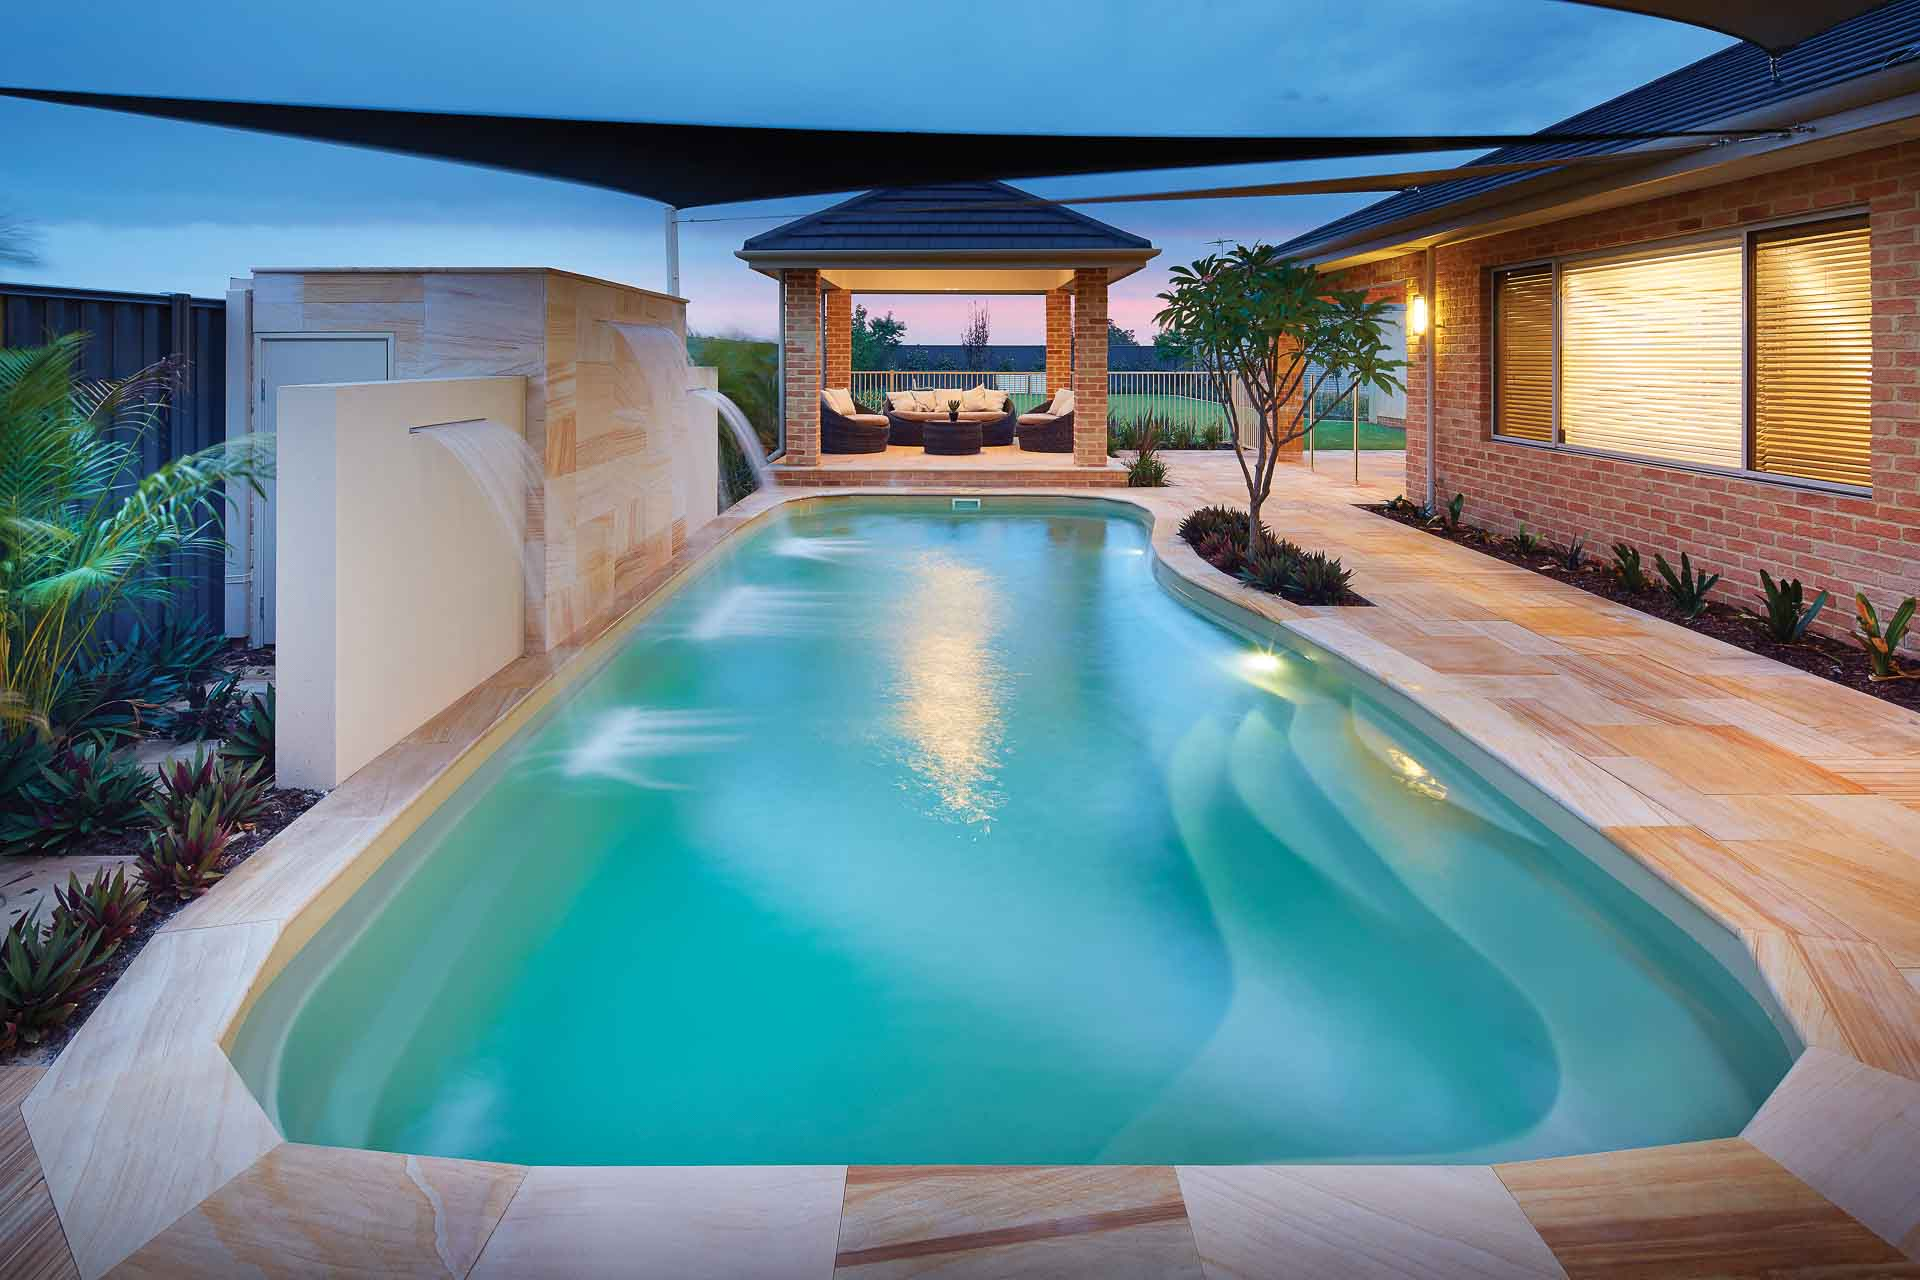 Fibreglass Pool Adelaide - Looking for a fibreglass pool installation for your home? Get a free measure and quote in Adelaide.